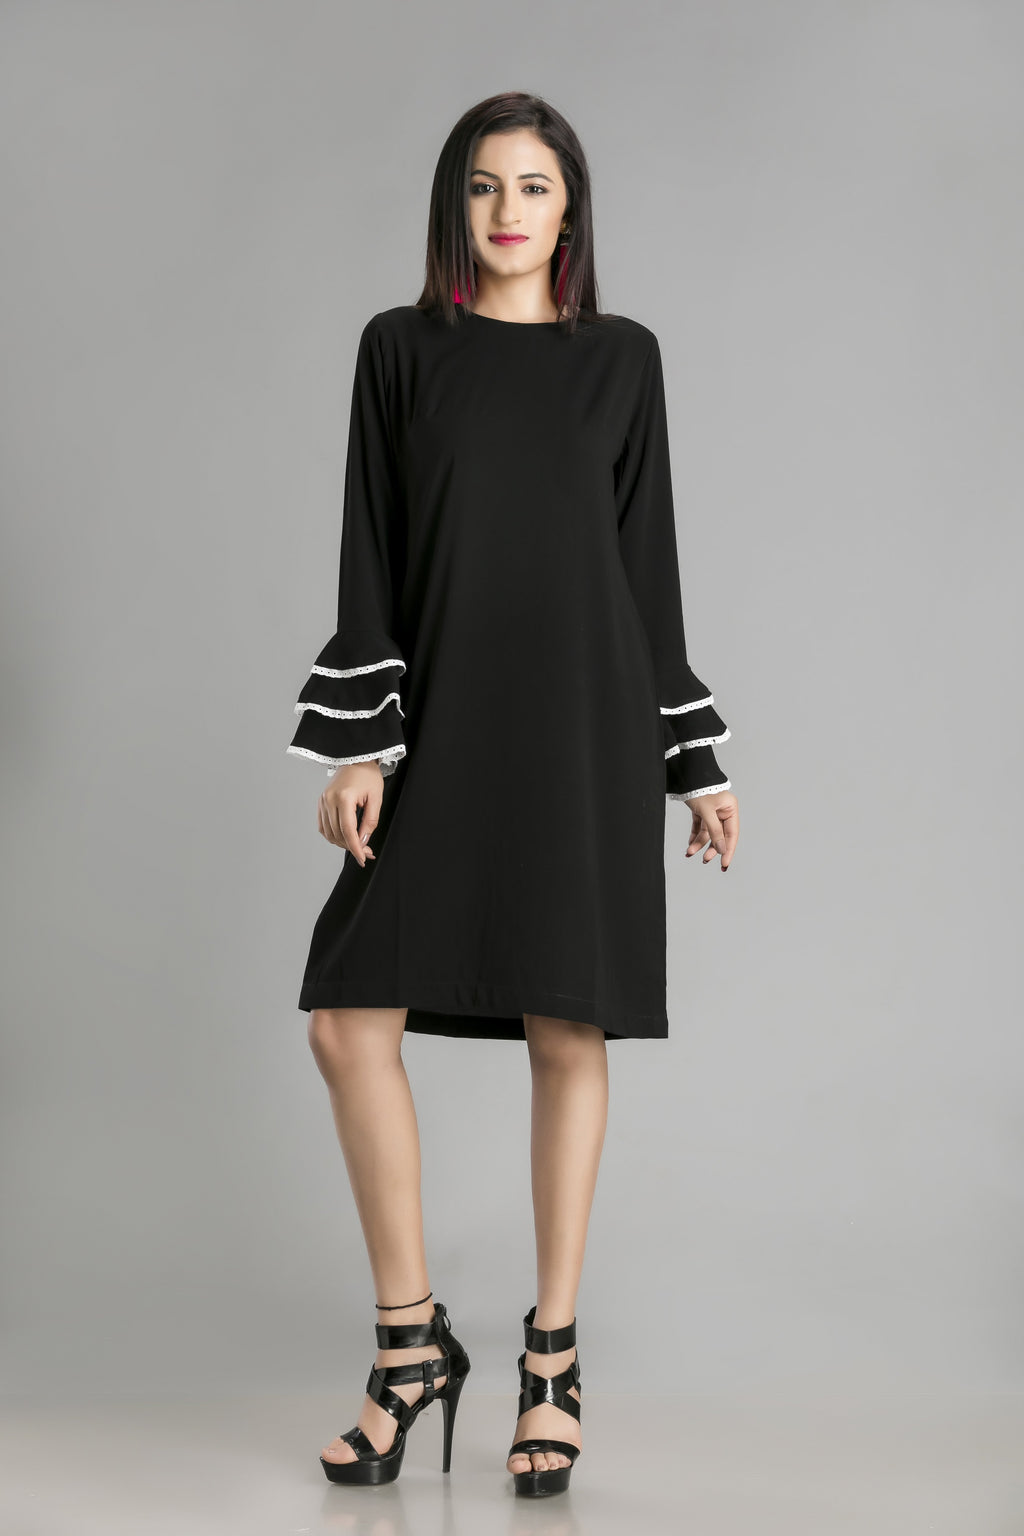 The Chic Ebony and Ivory Trim Dress